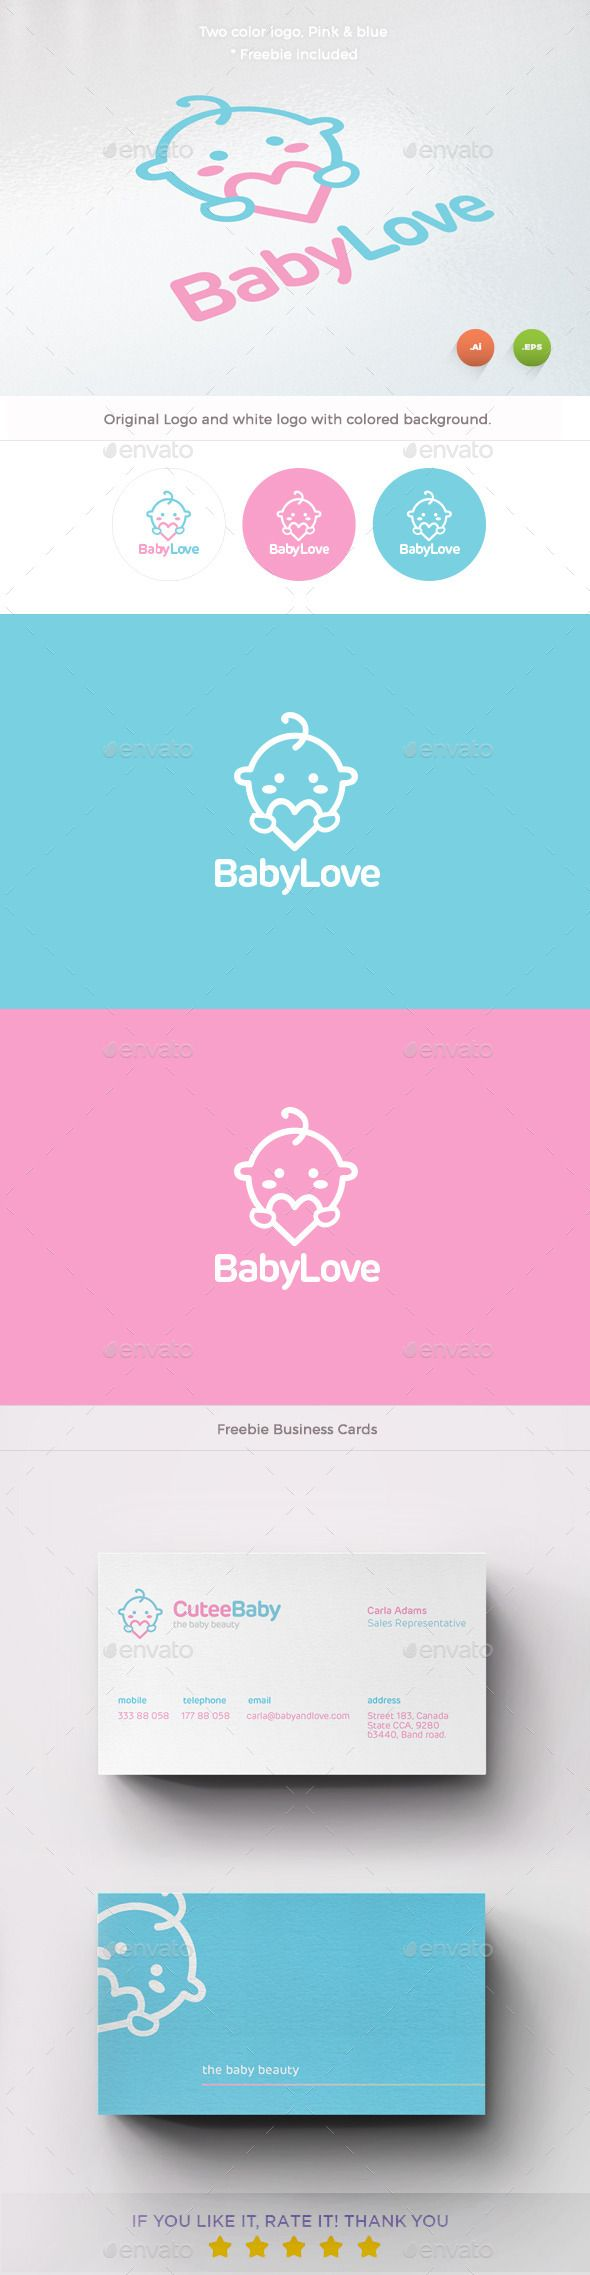 Baby Love Logo Template Vector EPS, AI #logotype Download here: http://graphicriver.net/item/baby-love-logo/10104631?ref=ksioks